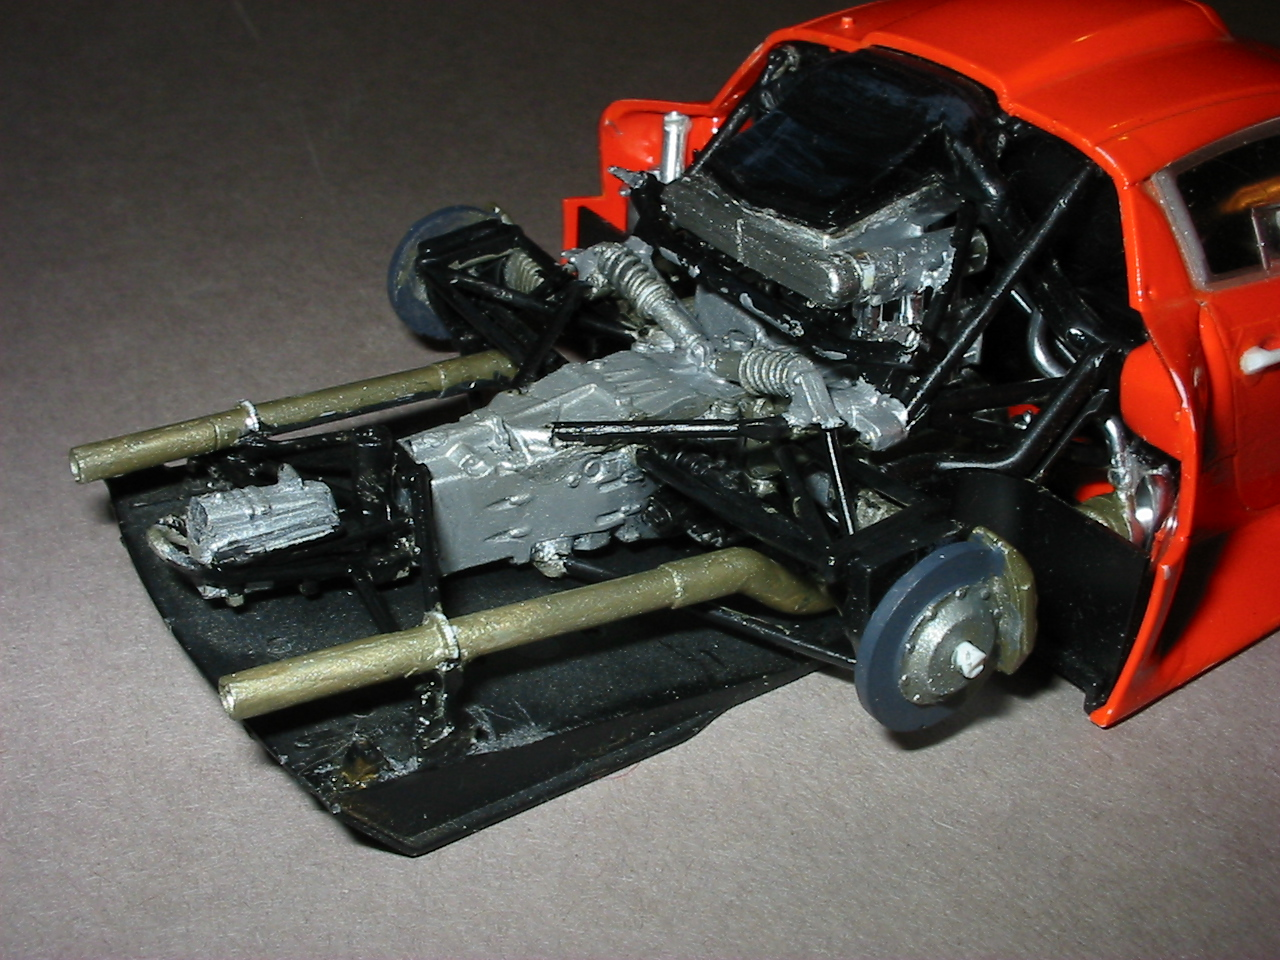 File:Tamiya Porsche GT1 engine, transmission, too much bad ...